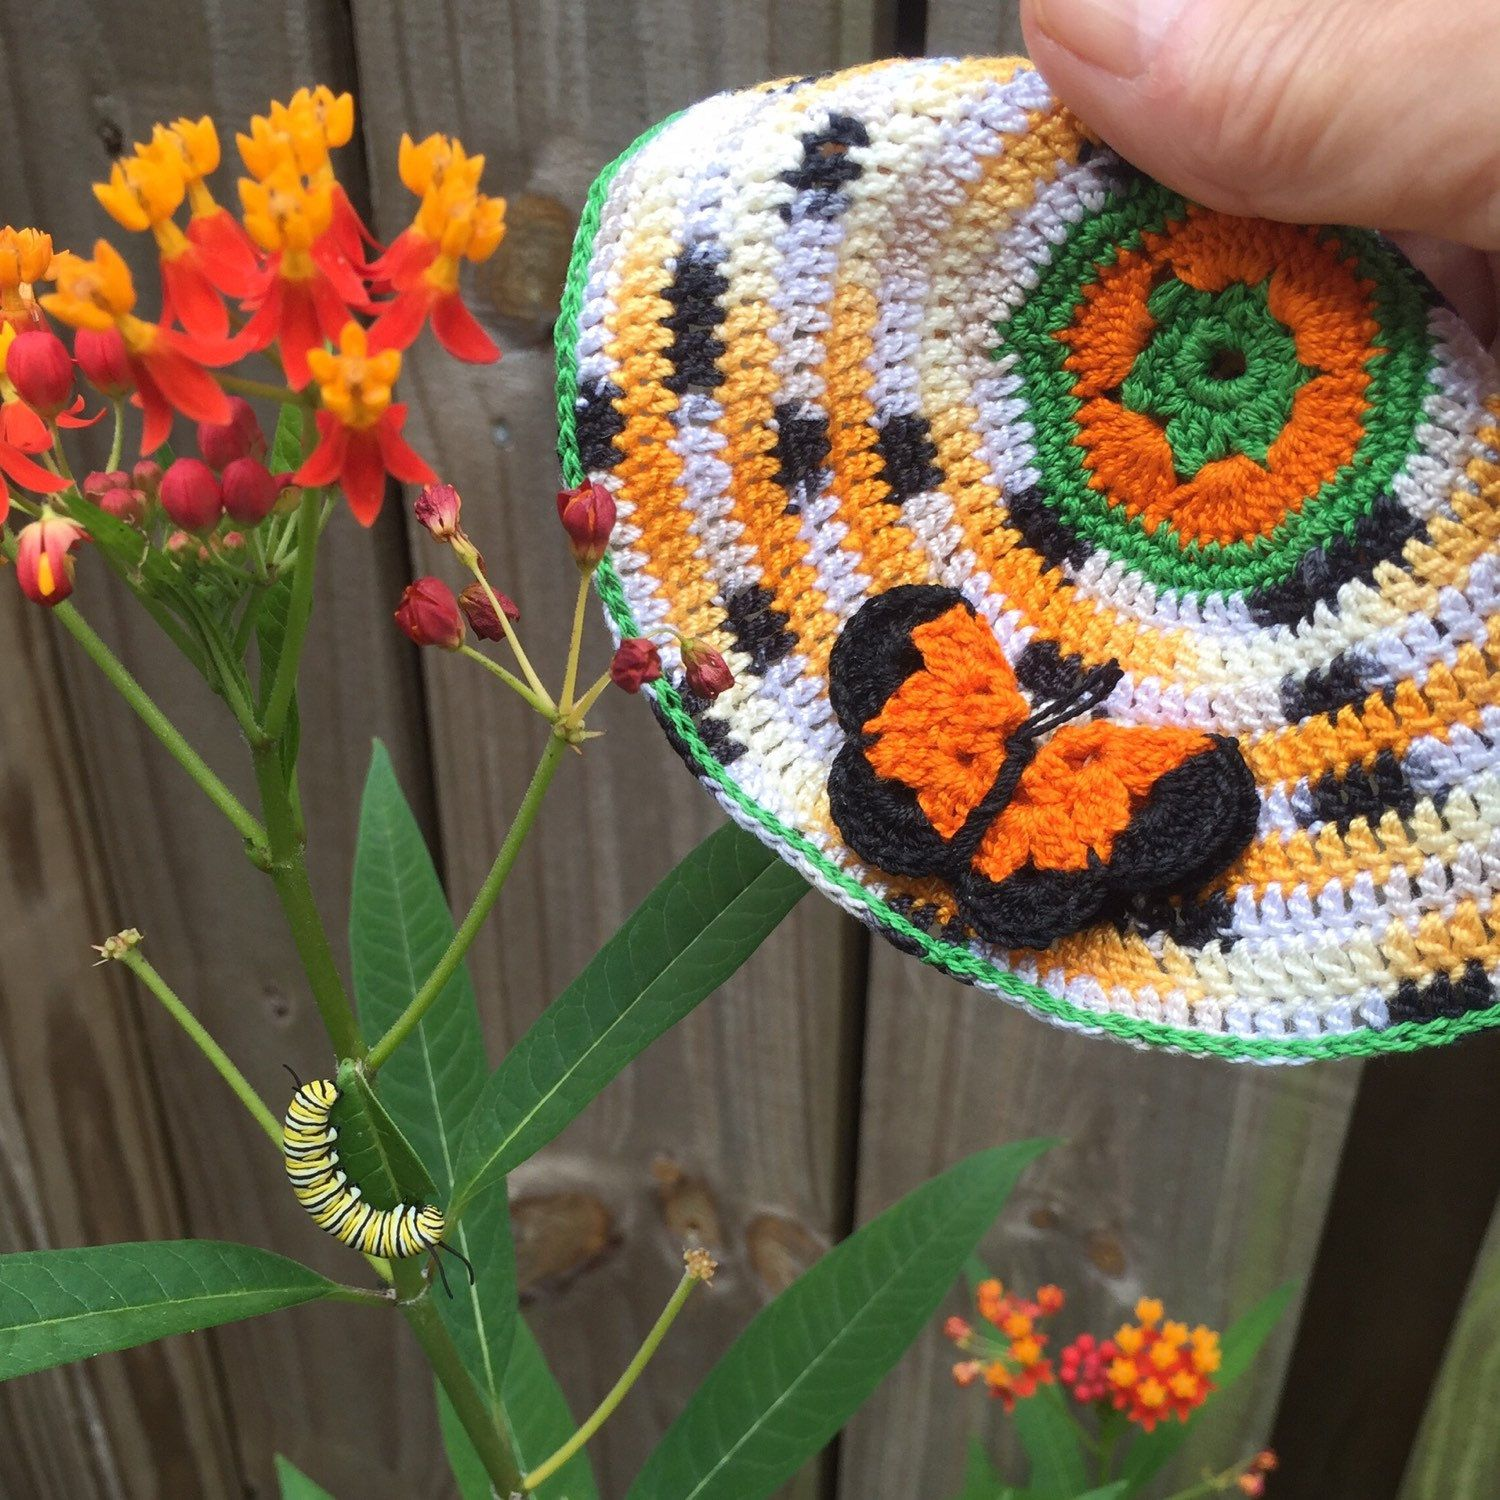 Attractive Crochet Kippah Patterns Ensign - Sewing Pattern for ...